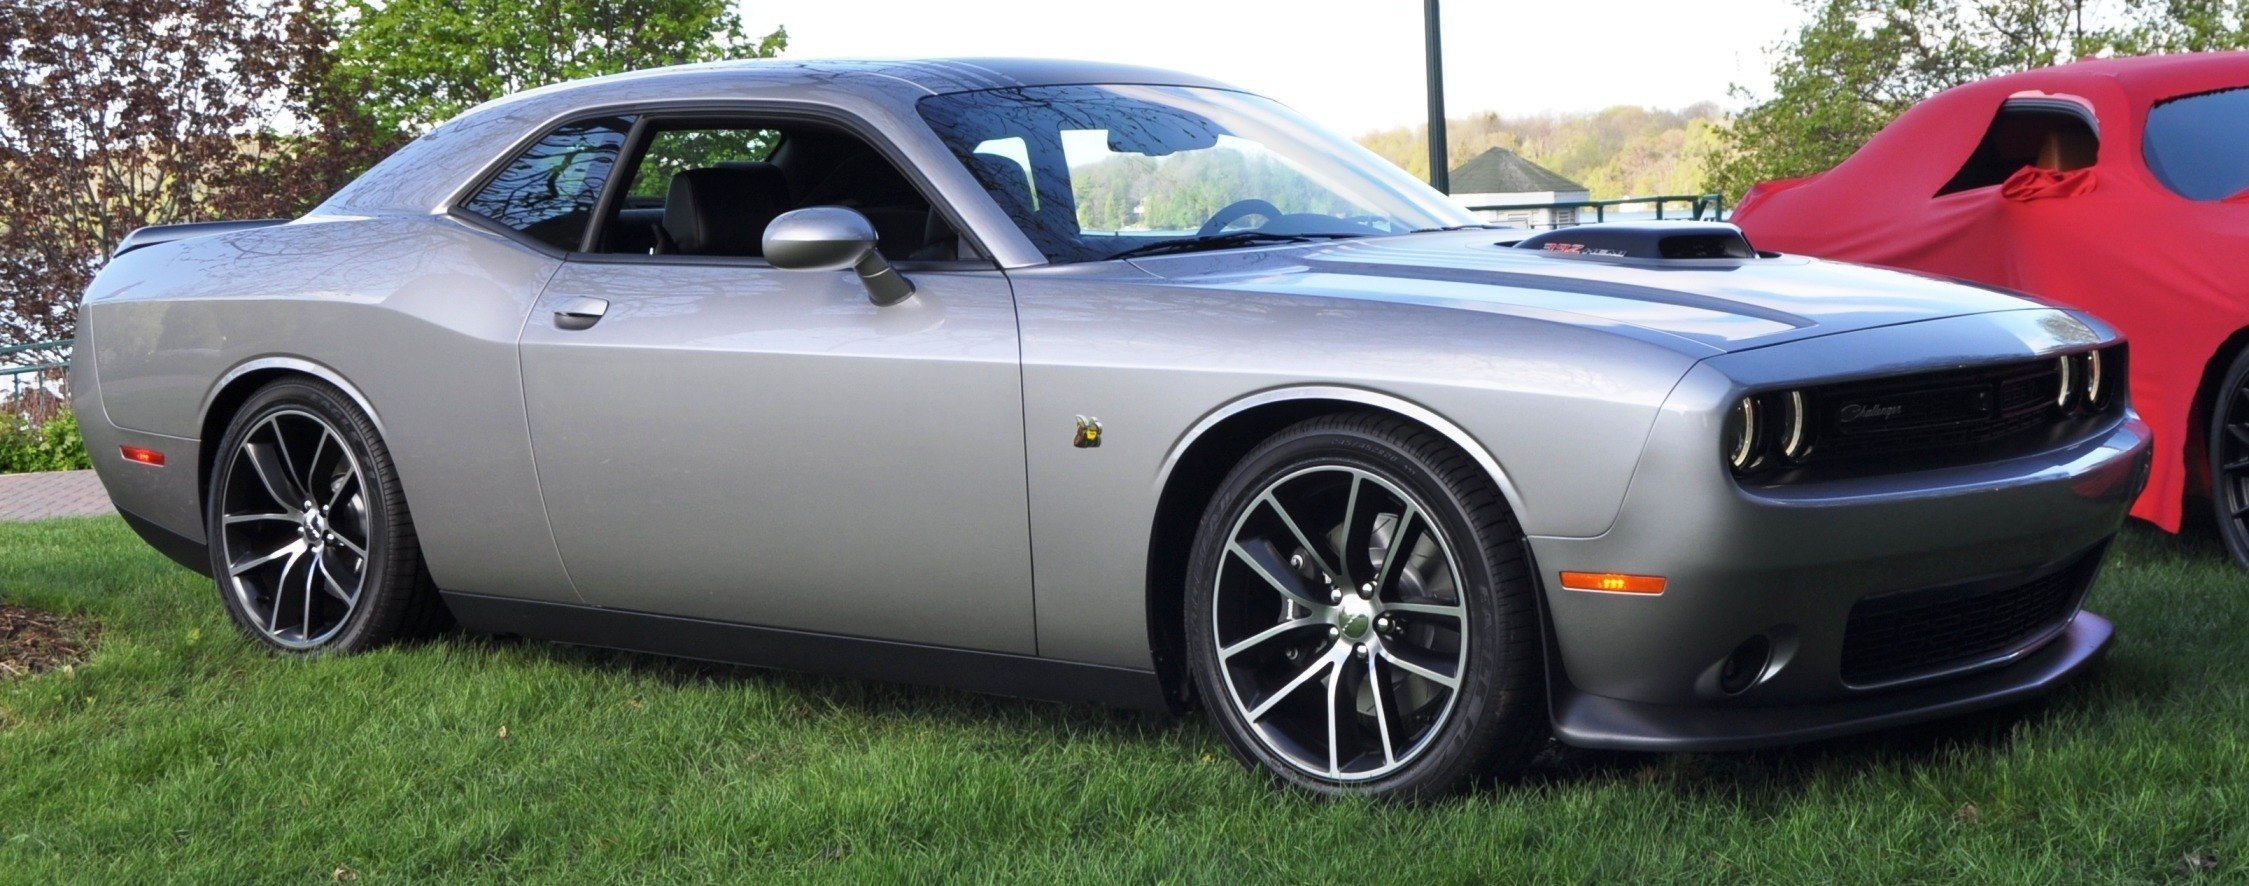 ... SRT Hellcat – Exhaust Note, Interior and Performance Upgrades Debut